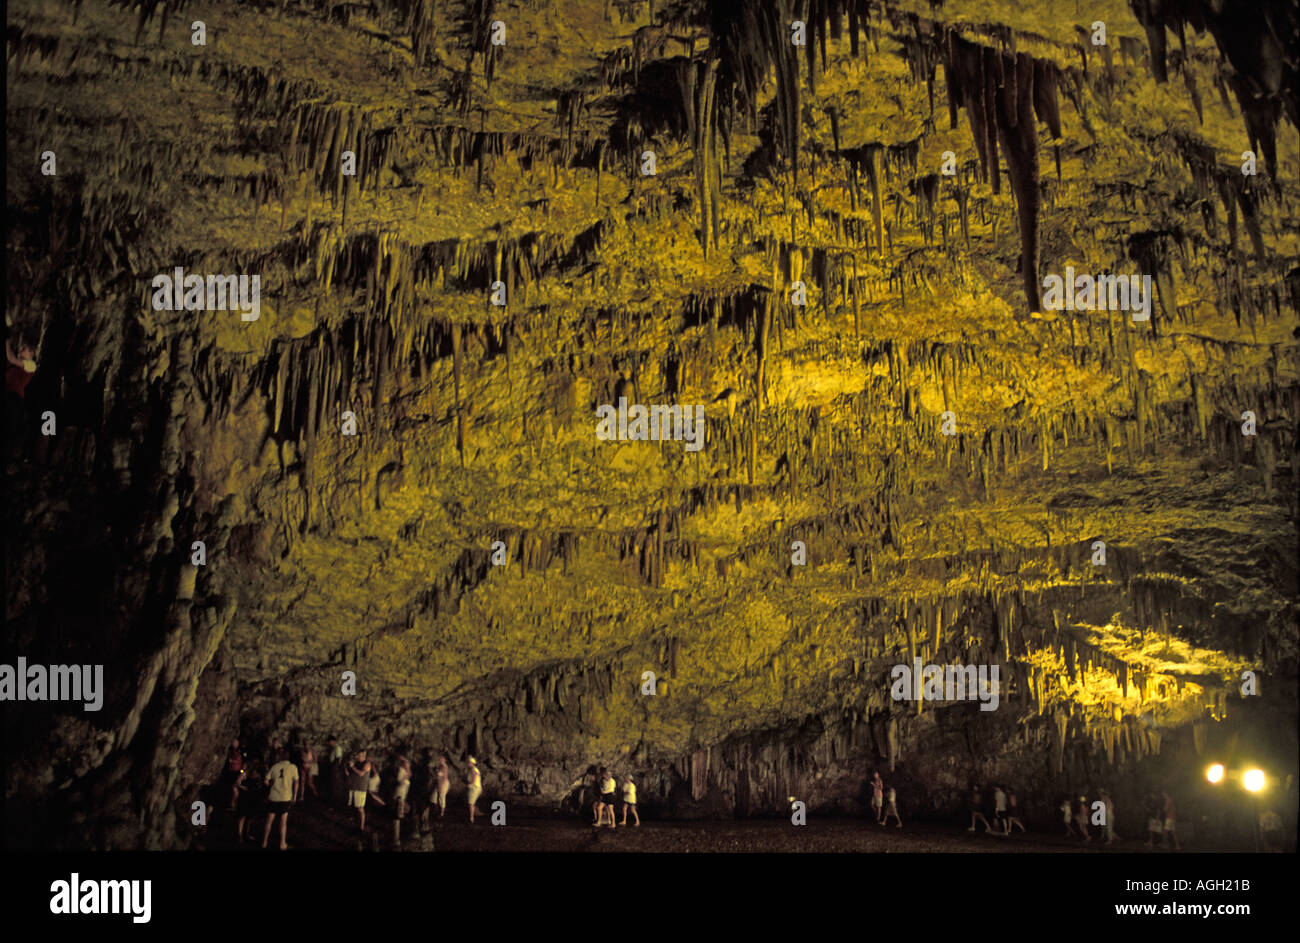 Drogorati Cave est150 million years Over 500 people can fit into this cavern Kefallonia Ionian Islands Greece Europe - Stock Image